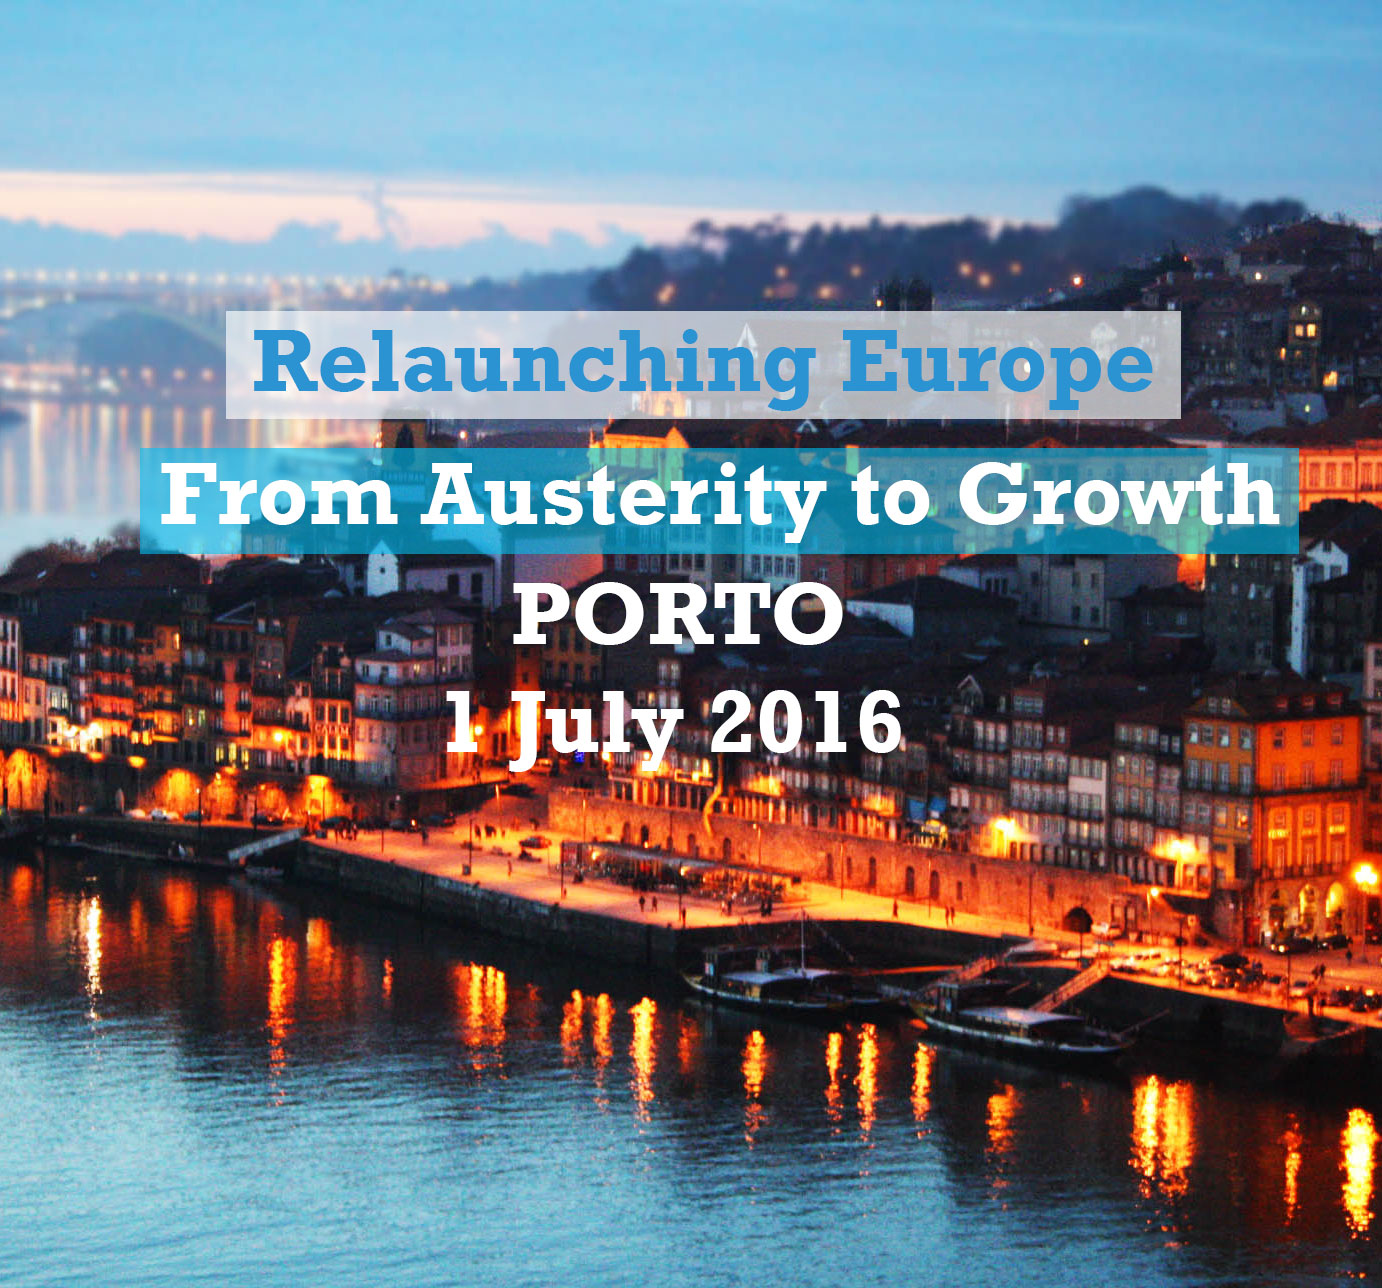 Relaunching Europe - From Austerity to Growth - Porto, Gianni Pittella,  Portuguese Prime-Minister António Costa, a fair fiscal policy and opportunities for the young generation,